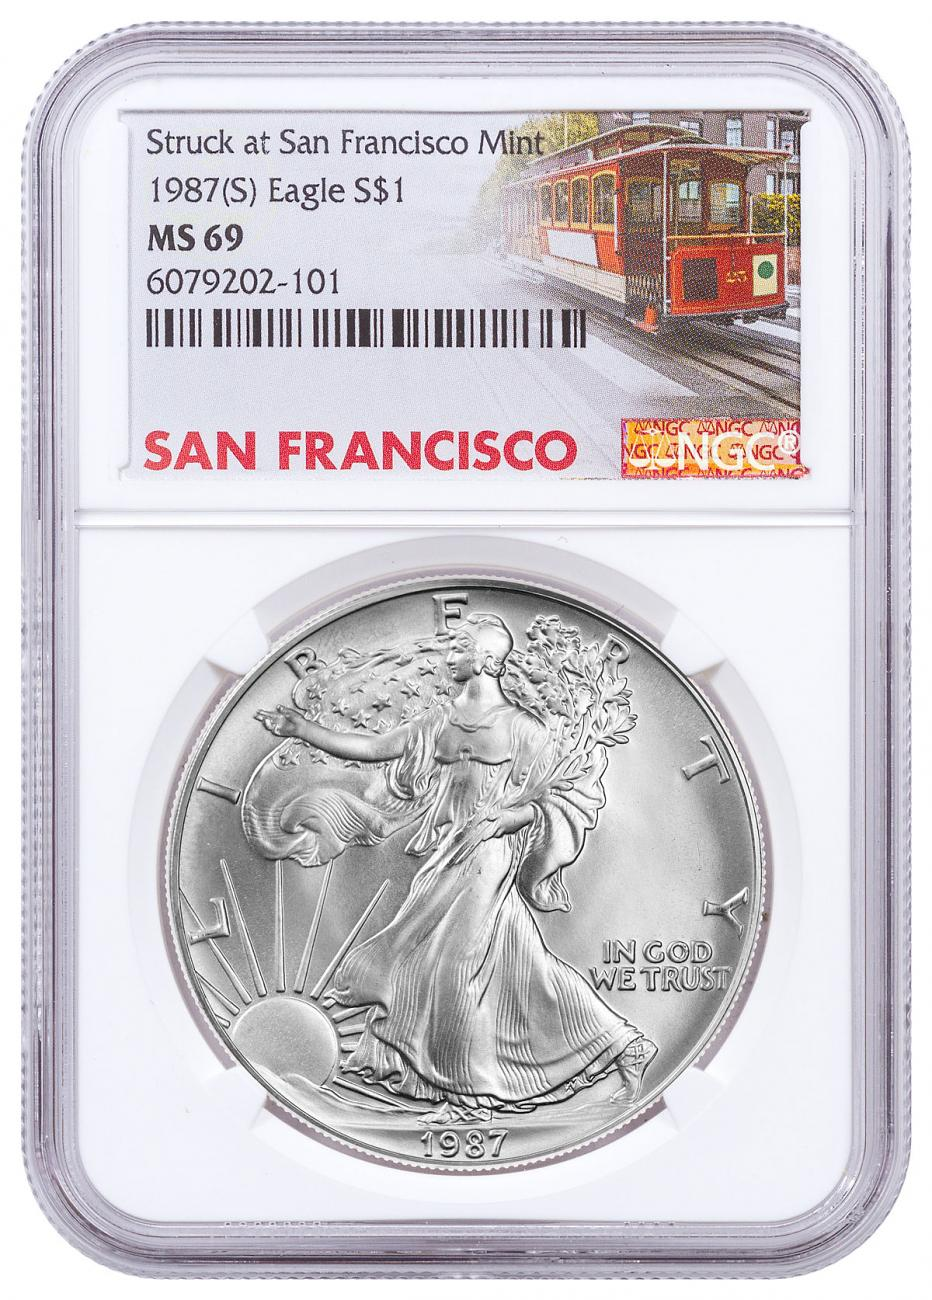 1987-(S) American Silver Eagle Struck at San Francisco Mint NGC MS69 Trolley Label